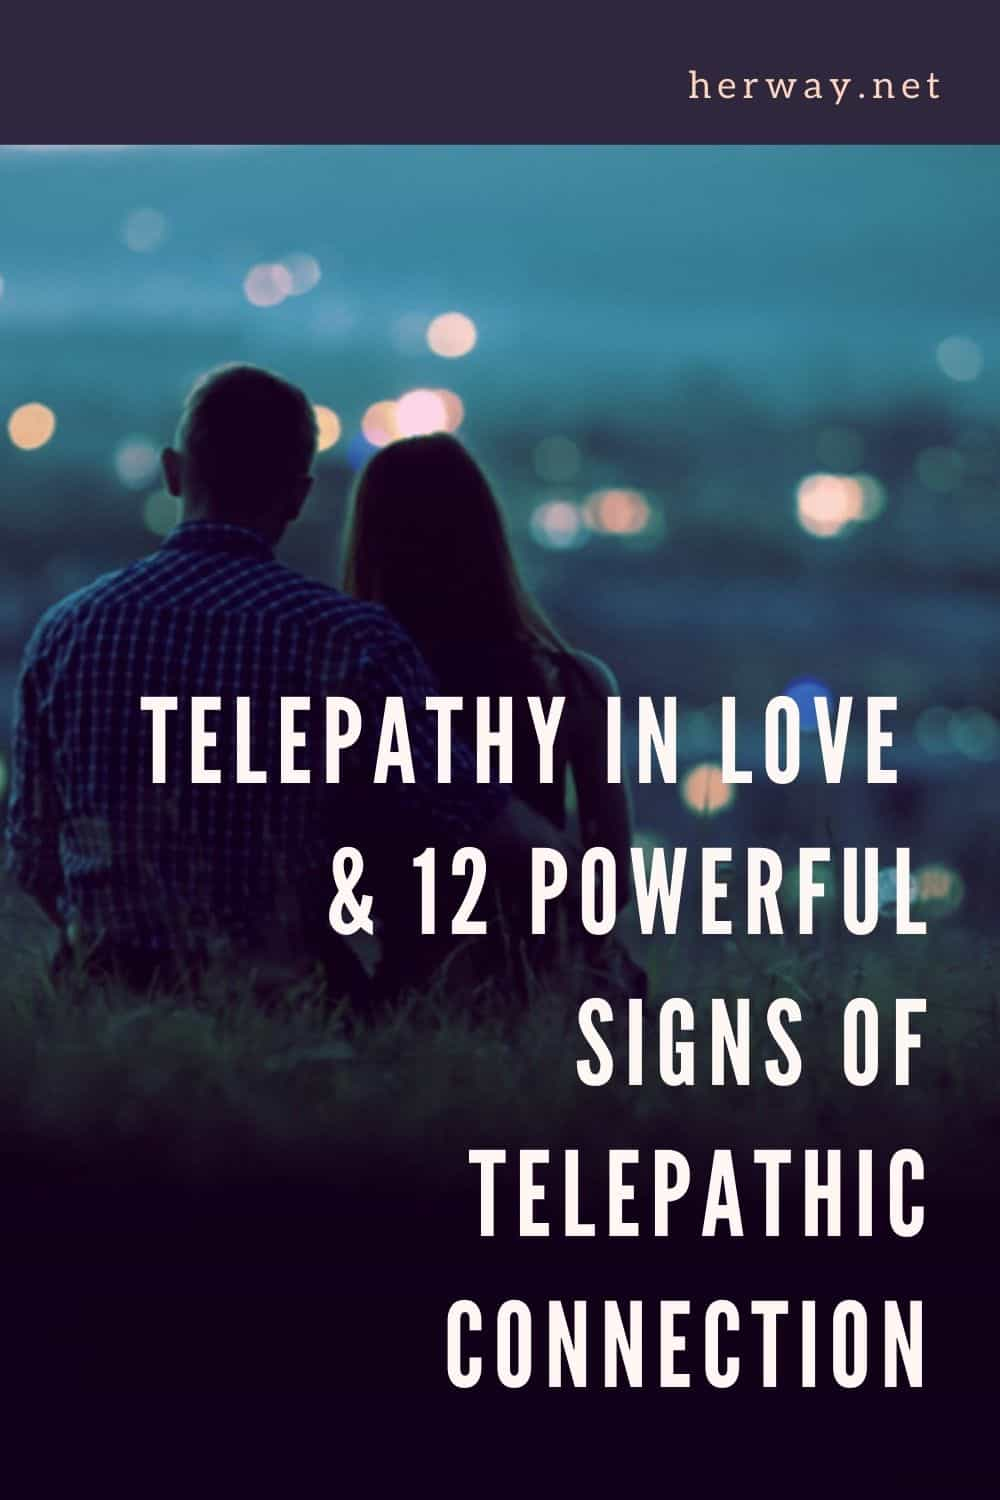 Telepathy In Love & 12 Powerful Signs Of Telepathic Connection